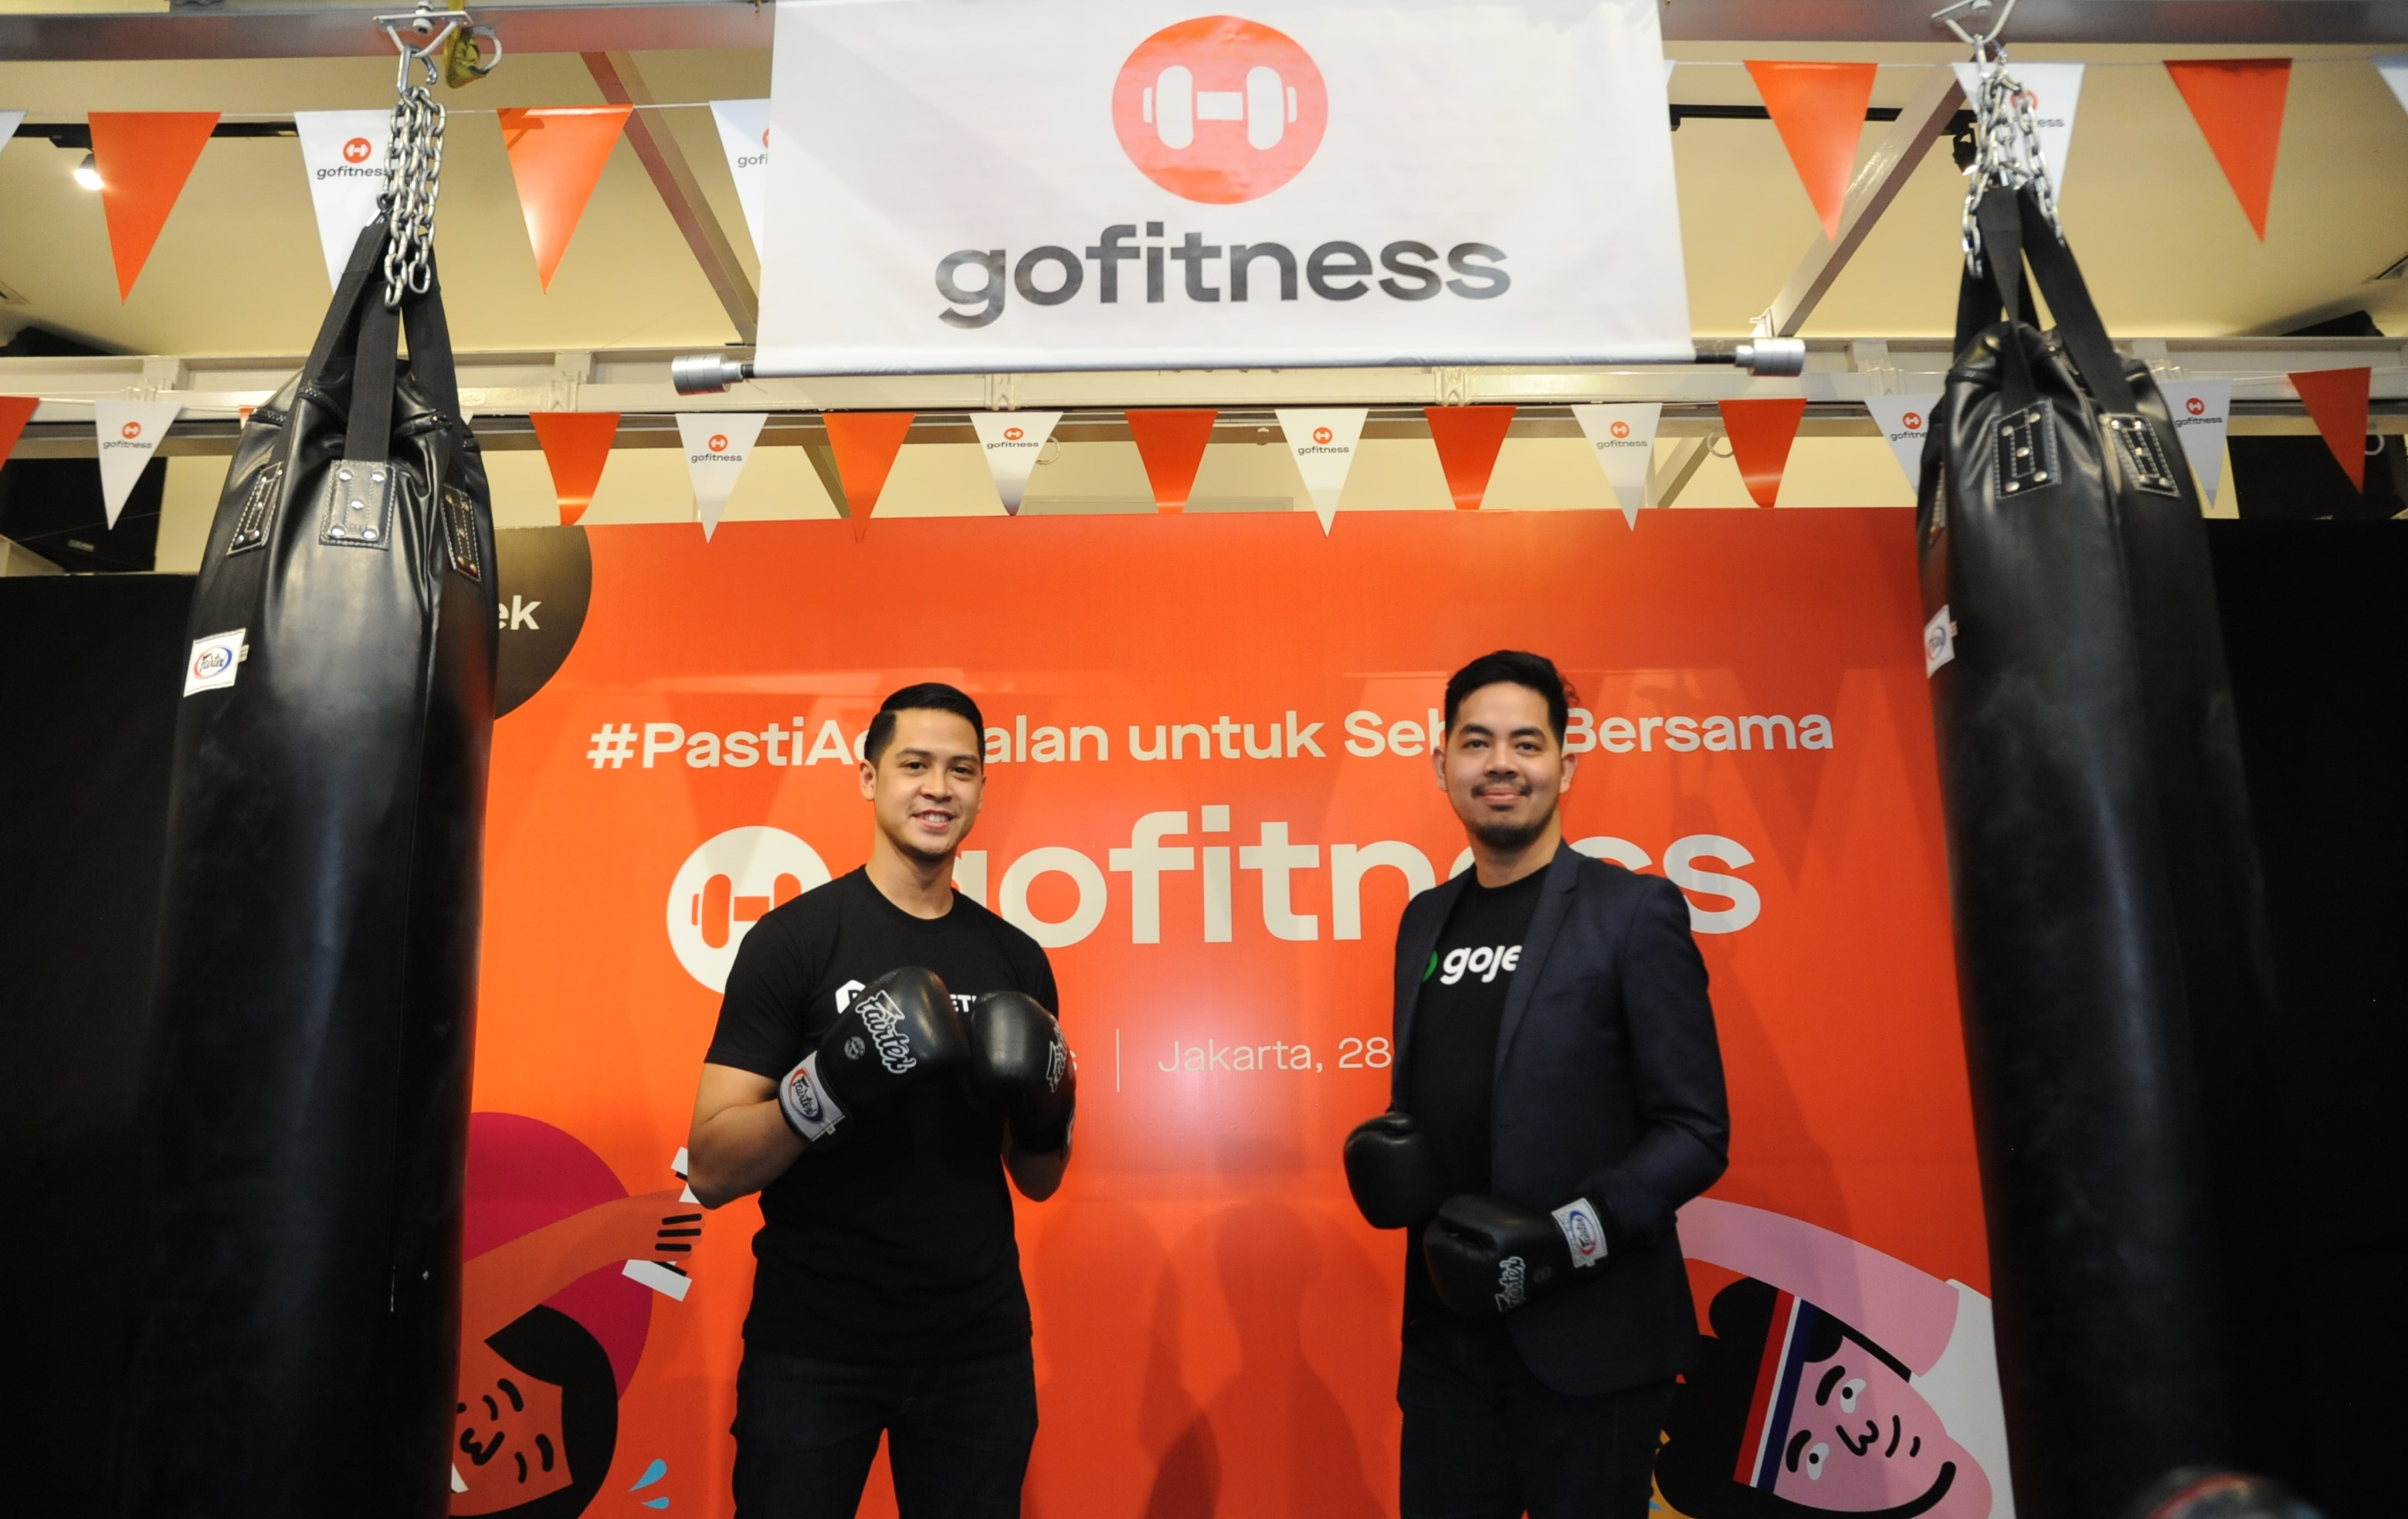 CEO Doogether Fauzan Gani dan Head of Third Party Platform Gojek Group Sony Radhityo saat peluncuran GoFitness / Gojek